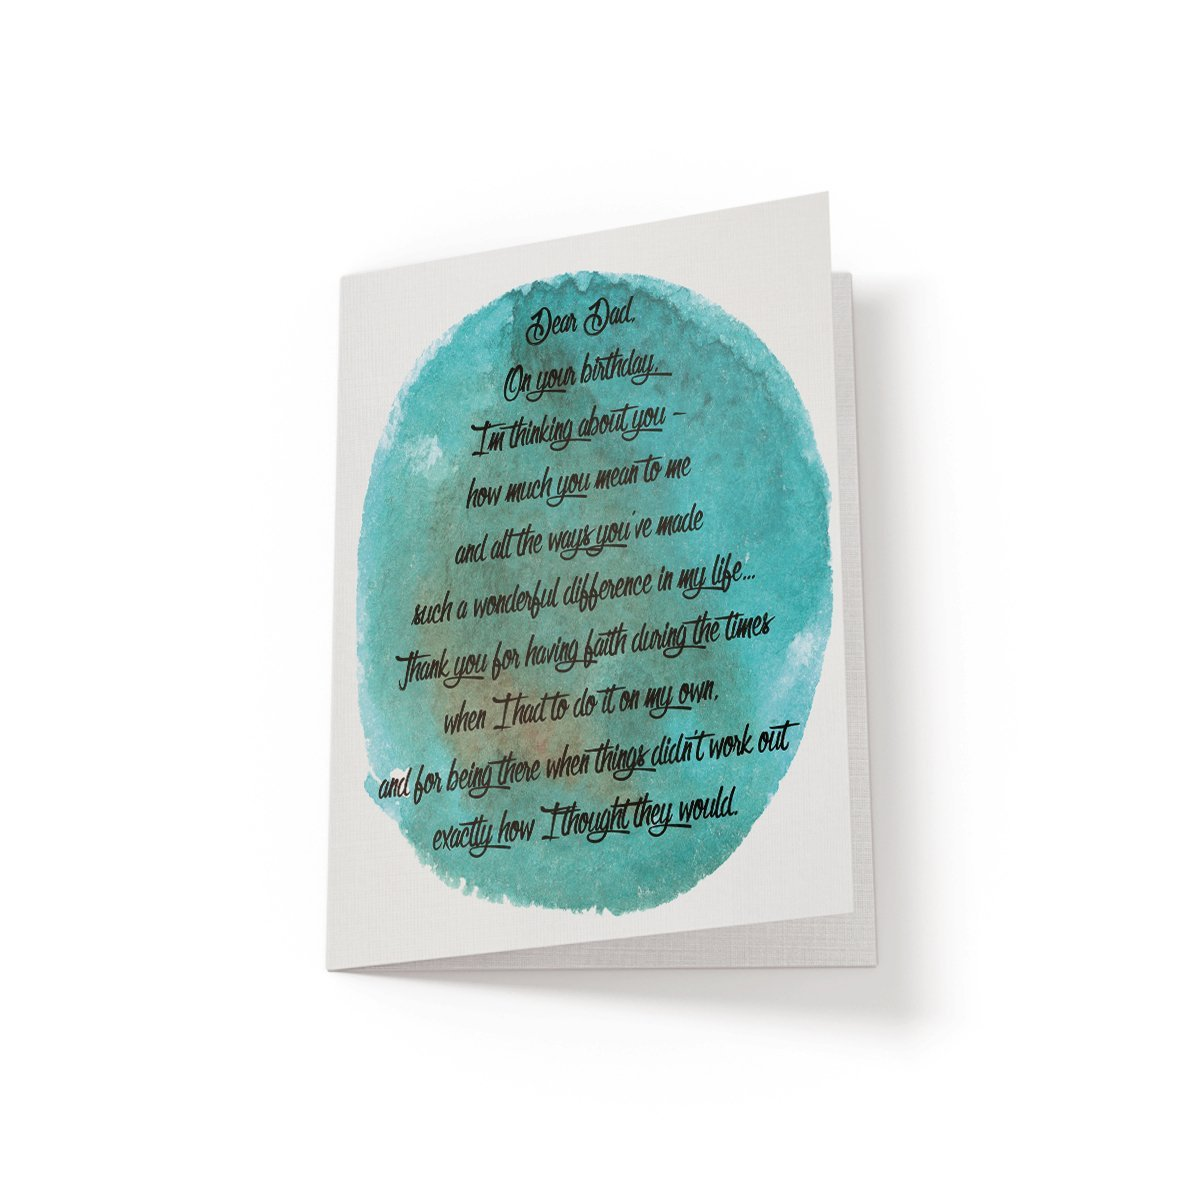 Dear Dad - Greeting Card - Netties Expressions